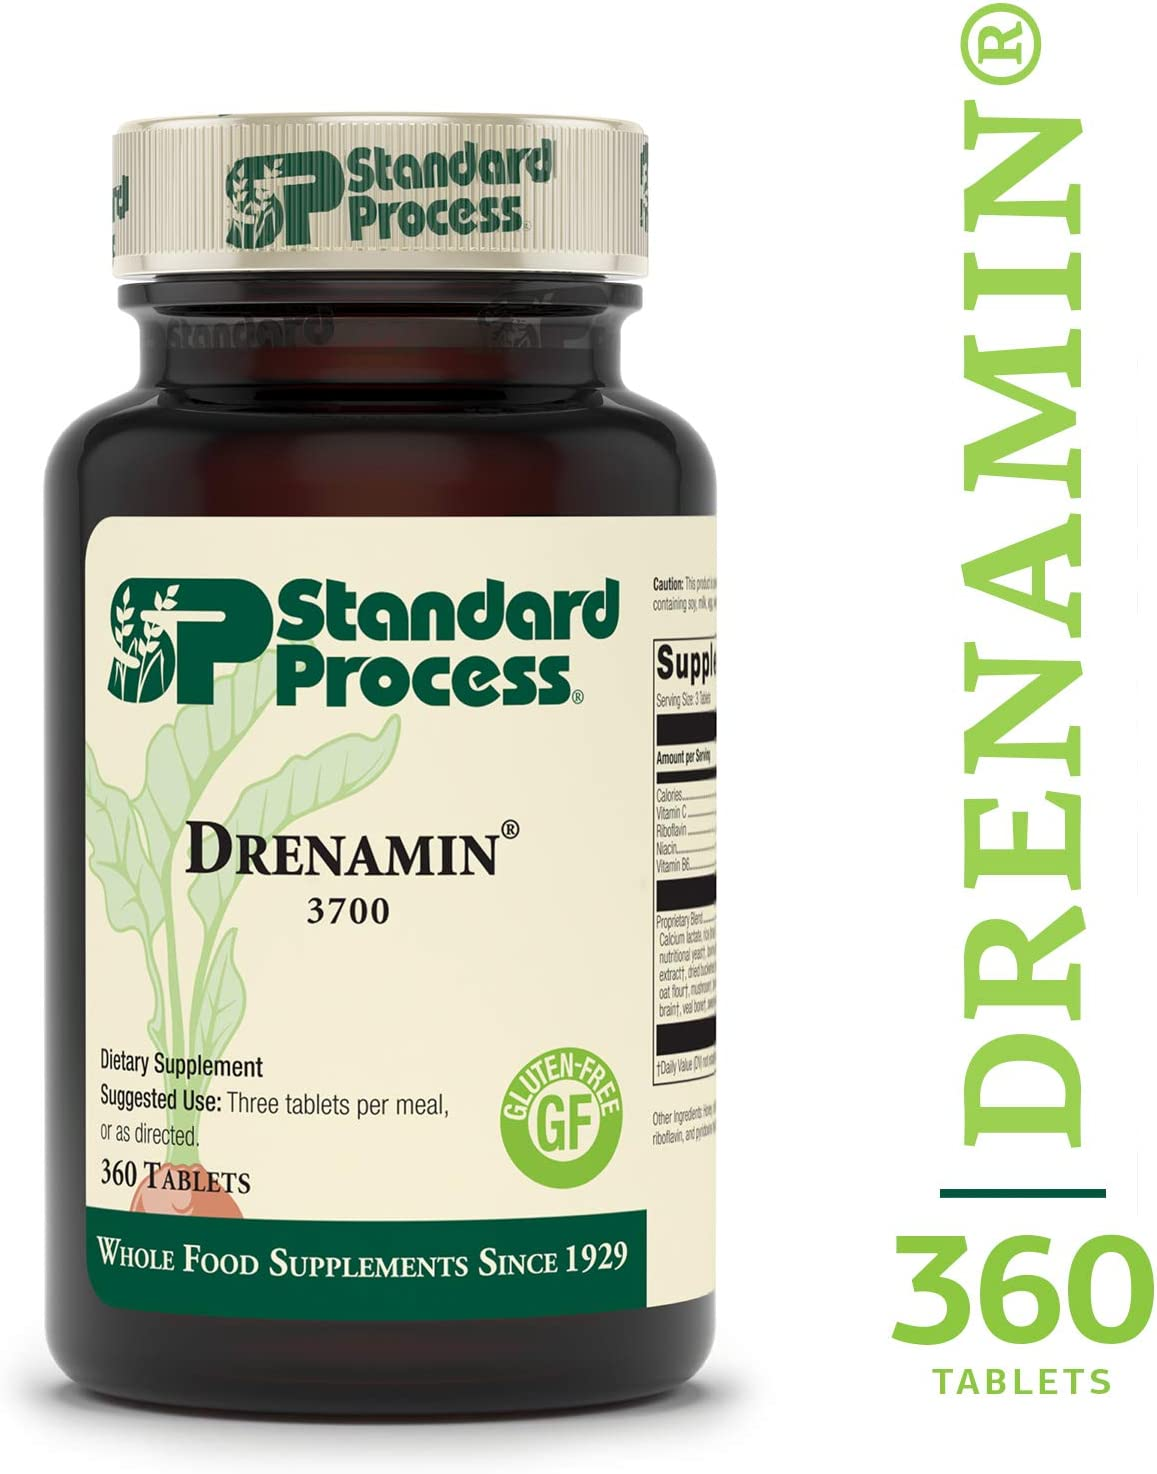 Standard Process – Drenamin – Supports Immune System Function, Energy Production, and Balanced Mood, Source of Antioxidant Vitamin C, Riboflavin, Niacin, and Vitamin B6, Gluten Free – 360 Tablets